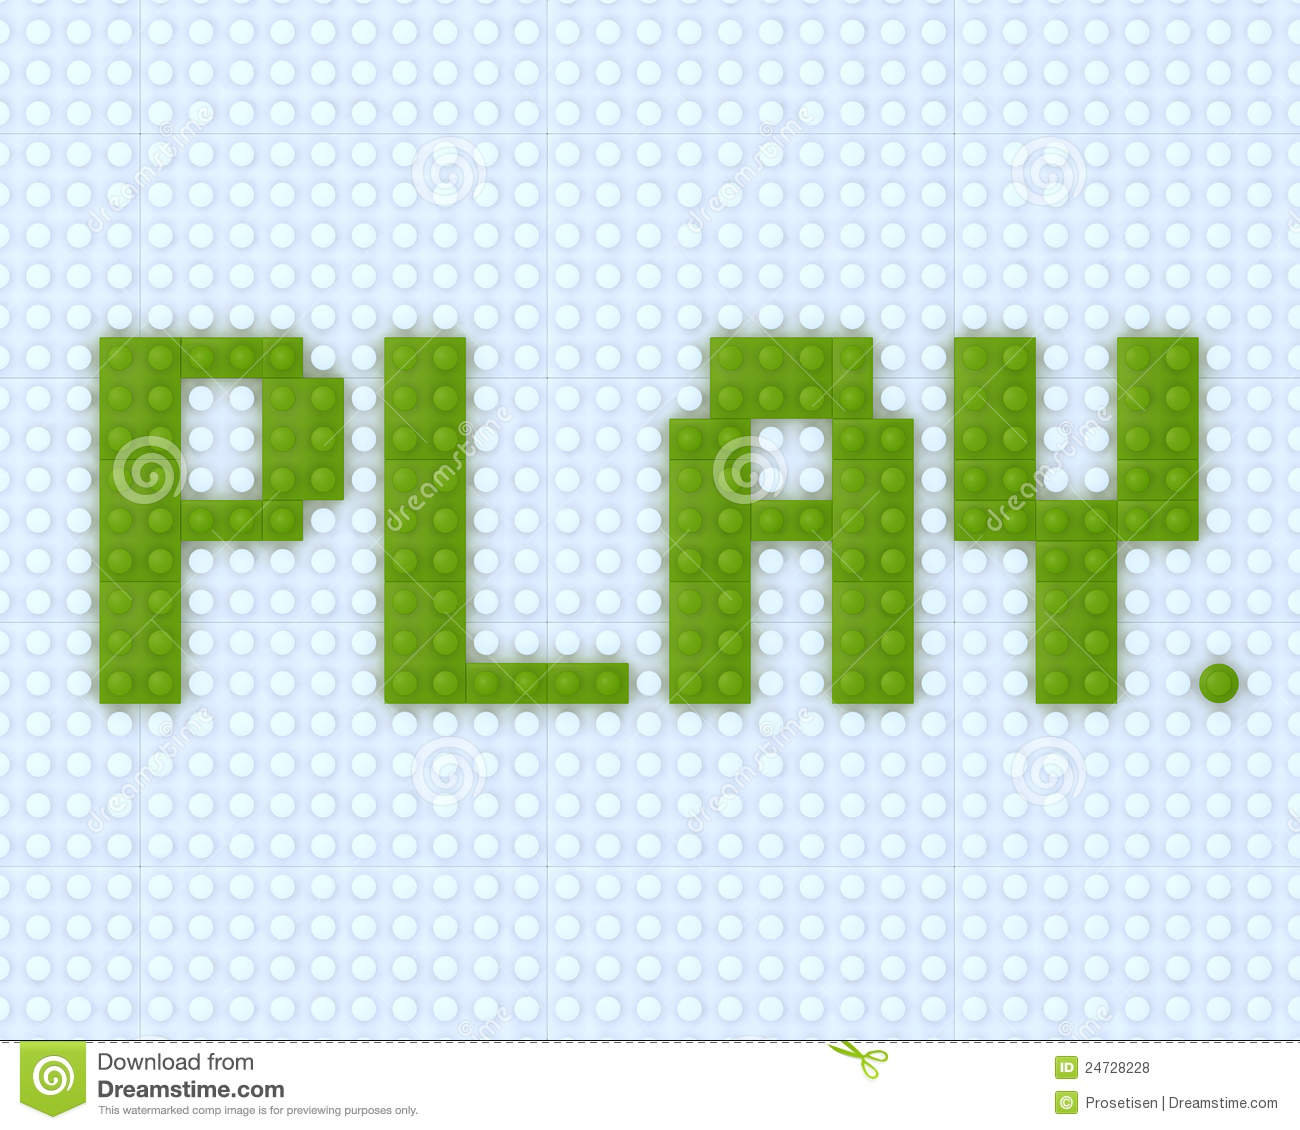 3D Play Word Lego Royalty Free Stock Photos - Image: 24728228